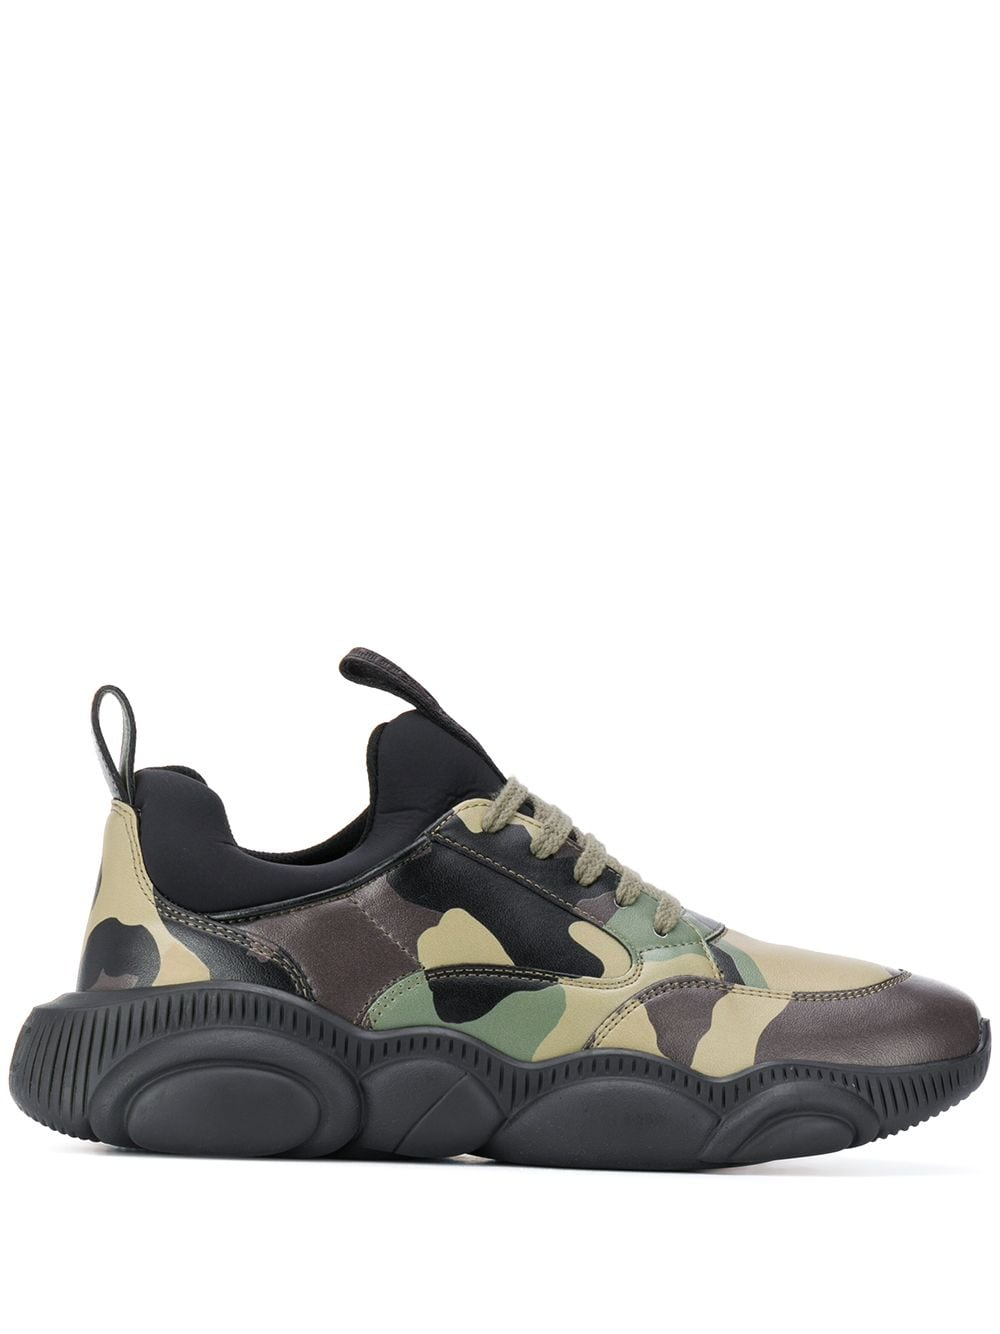 SNEAKERS CAMOUFLAGE MOSCHINO | Sneaker | MB15103G0BGQ285ACAMOUFLAGE